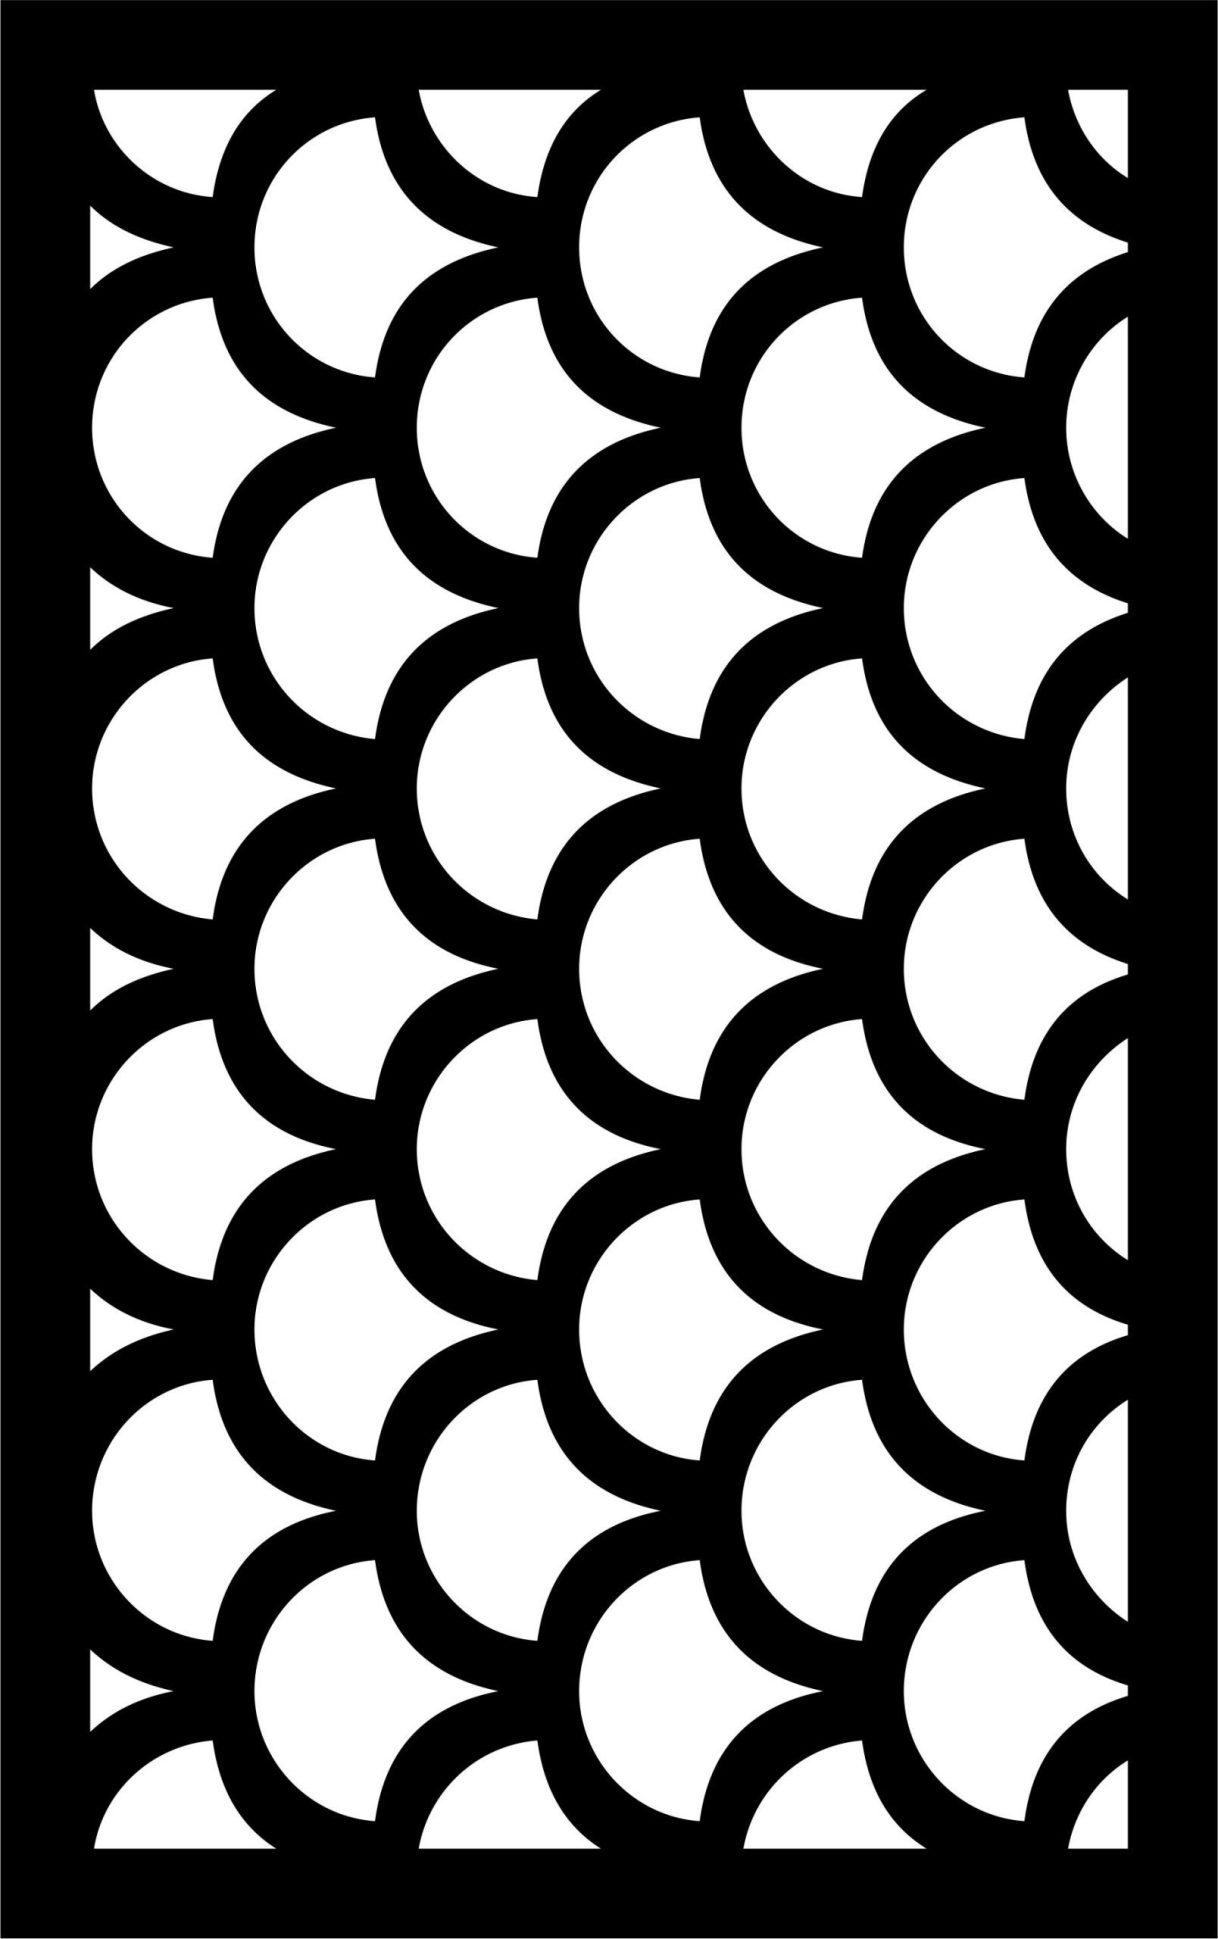 Decorative Screen Patterns For Laser Cutting 21 Free DXF File